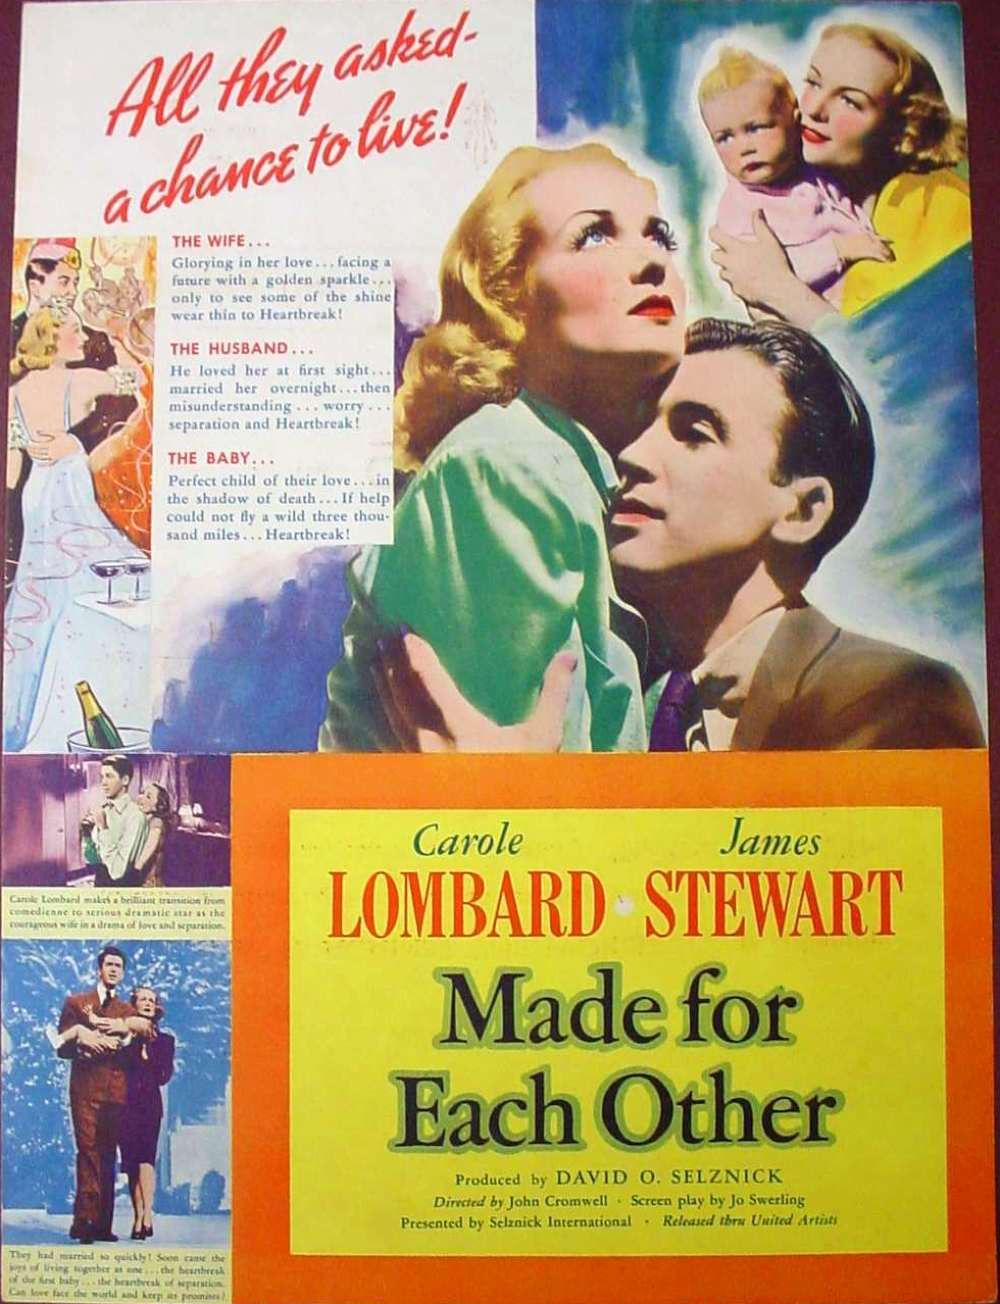 carole lombard made for each other herald 00a front